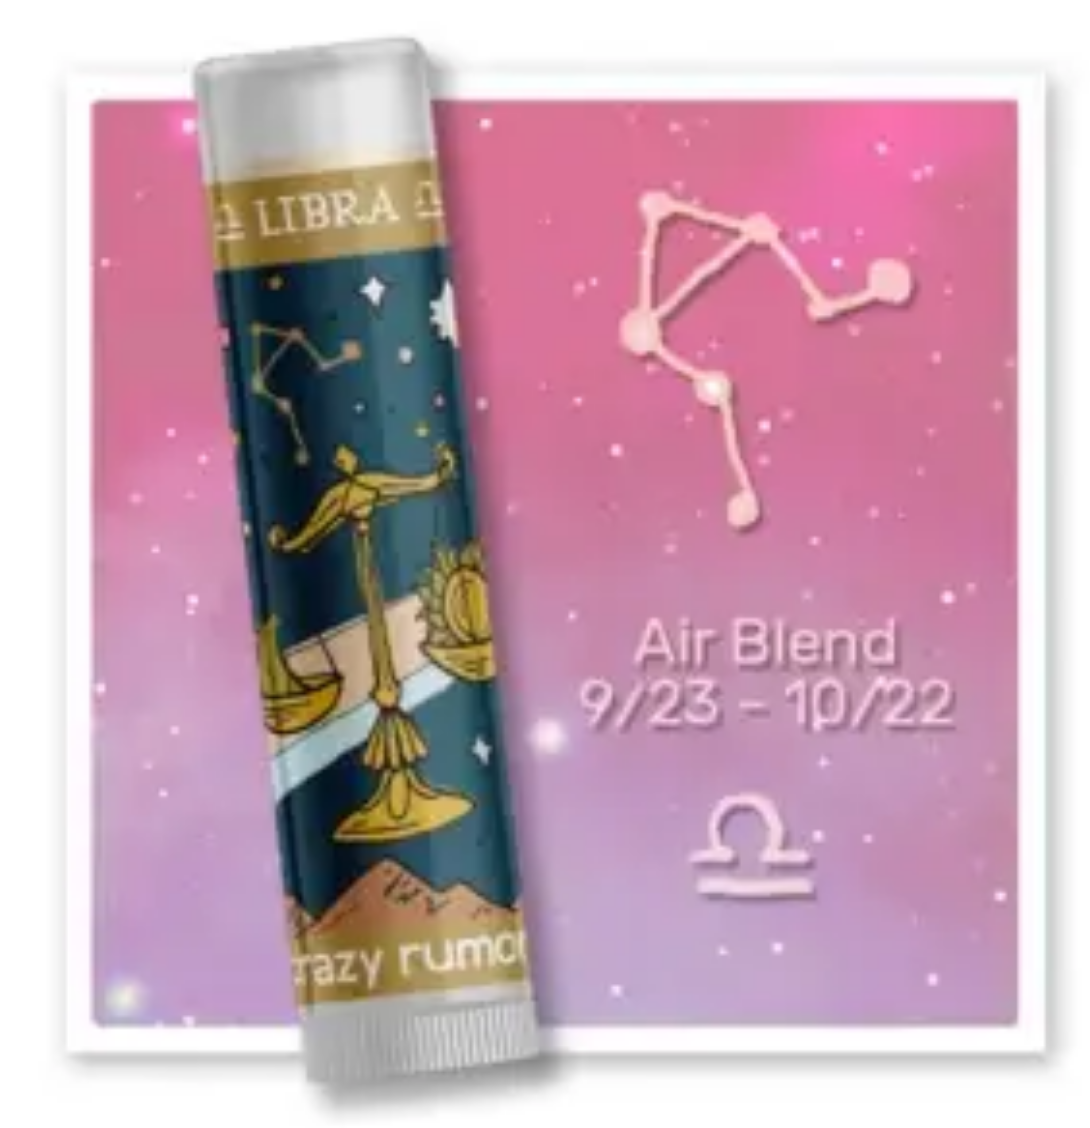 Crazy Rumors Libra - Air Blend Lip Balm